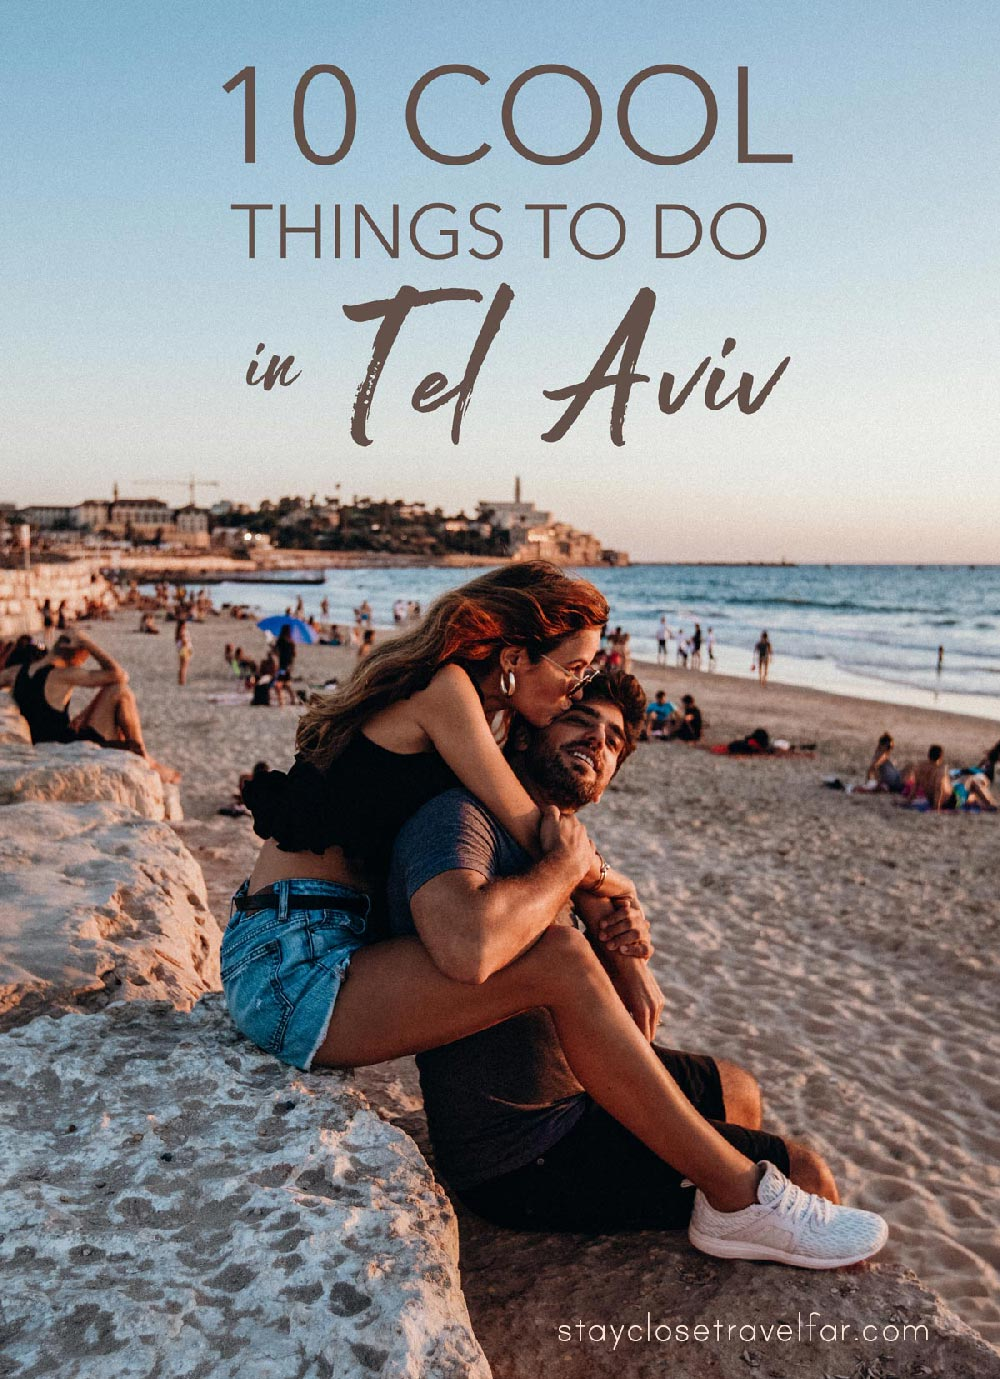 10-cool-things-to-do-in-tel-aviv